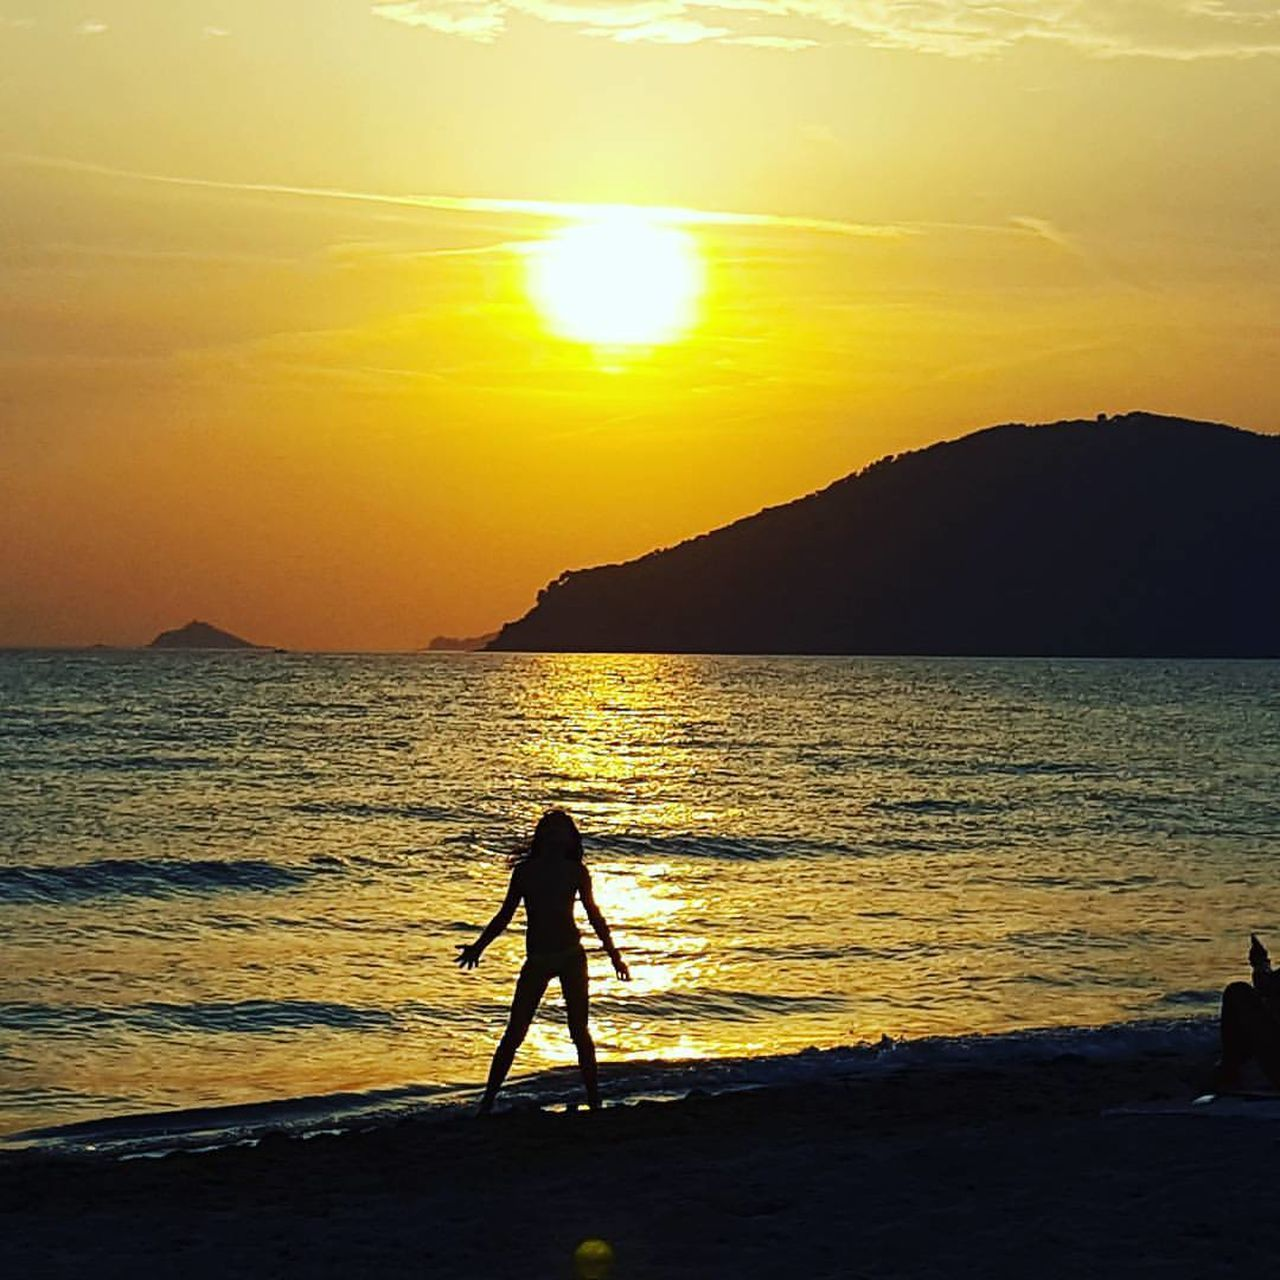 Medditeranian summer Sea Sunset Beach Silhouette Sunlight Beauty In Nature Sand Water Full Length Nature One Person Scenics Outdoors Standing People Adult Only Women Horizon Over Water Sky Sport